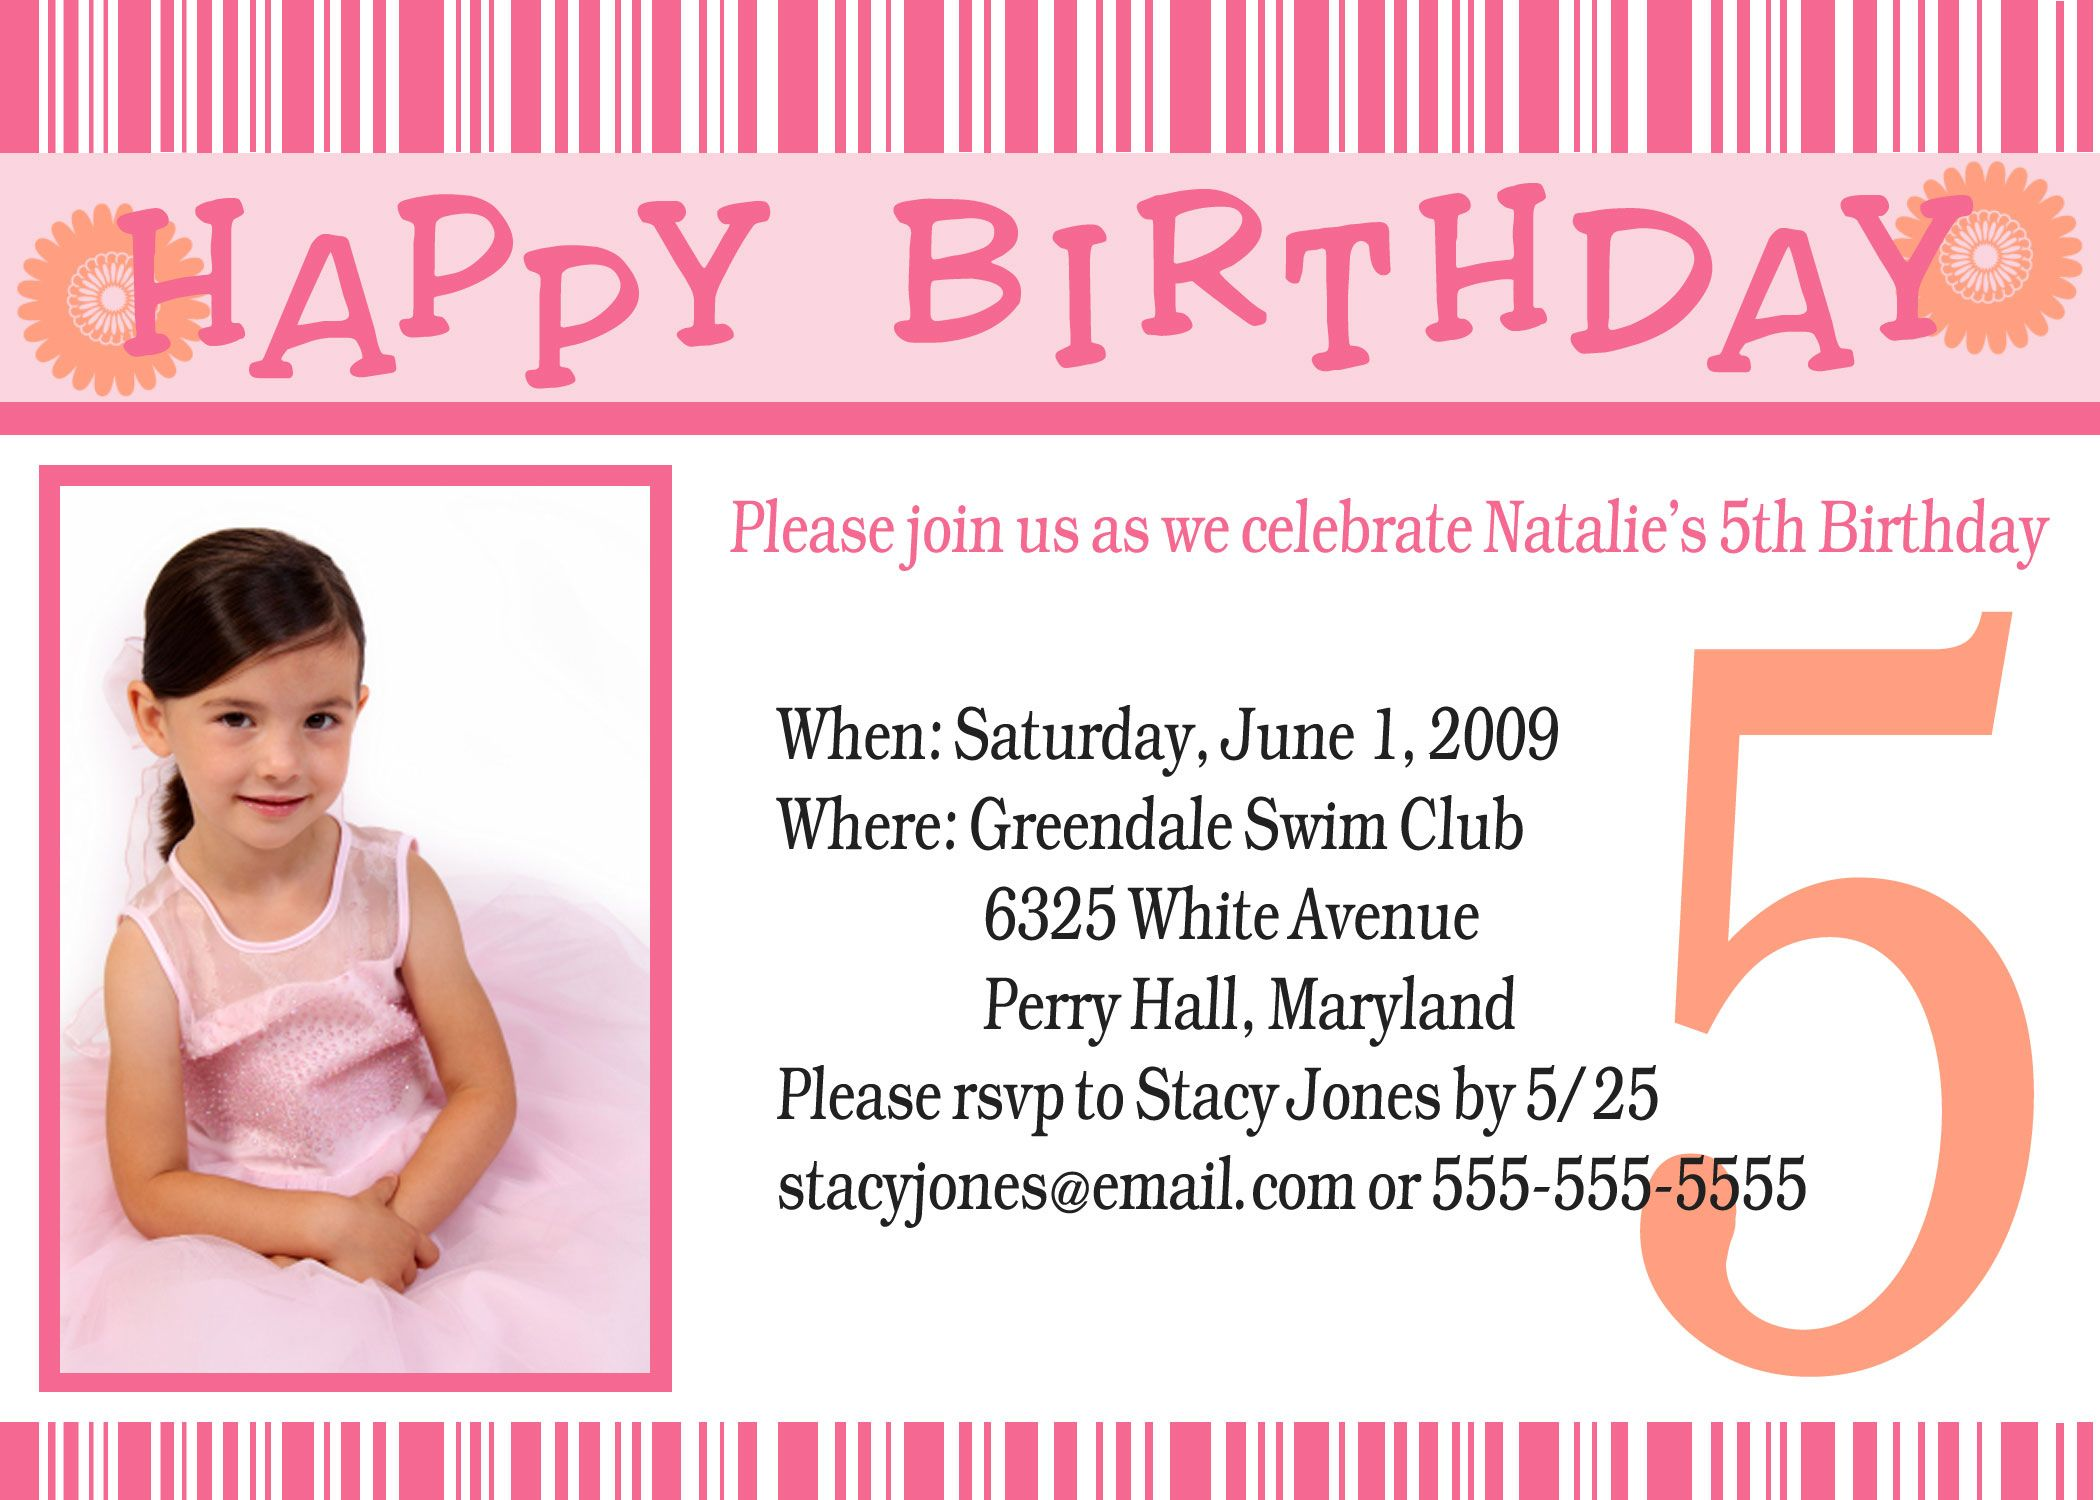 Birthday party invitations invitation templates templates birthday party invitations invitation templates stopboris Images